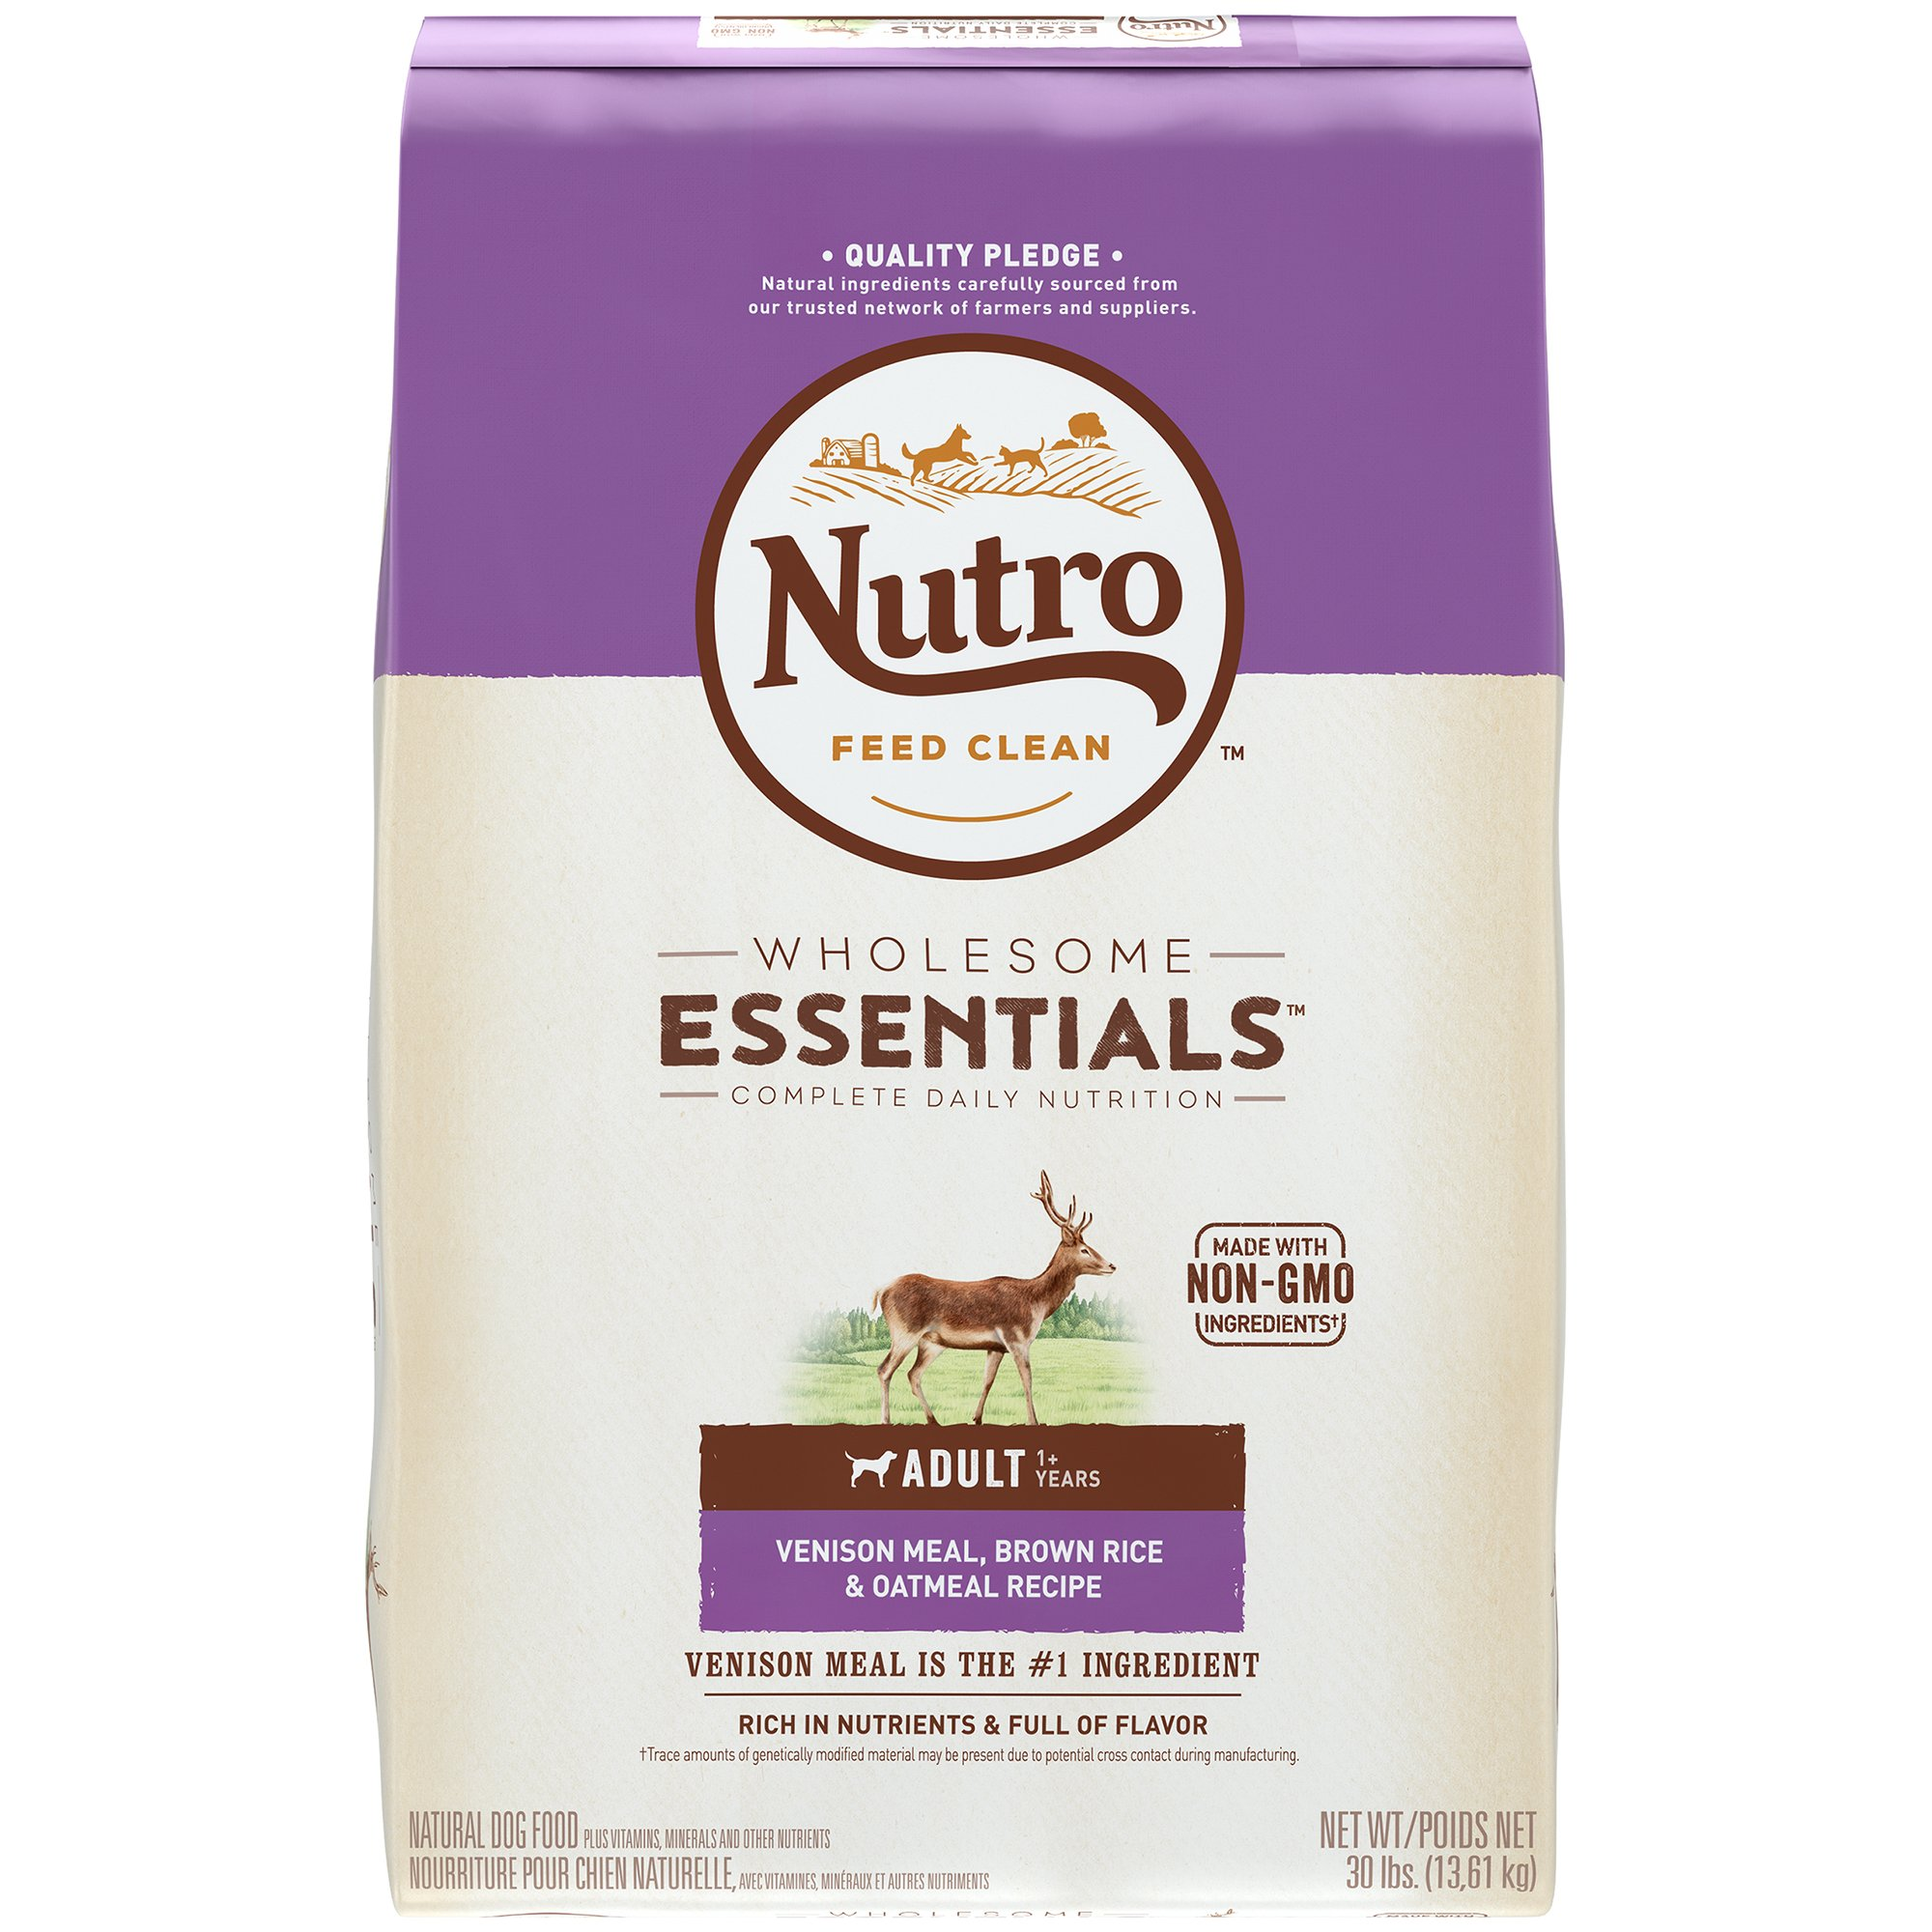 NUTRO WHOLESOME ESSENTIALS Adult Venison Meal, Brown Rice & Oatmeal Recipe Dry Dog Food Plus Vitamins, Minerals & Other Nutrients ; (1) 30-lb. bag; Rich in Nutrients and Full of Flavor